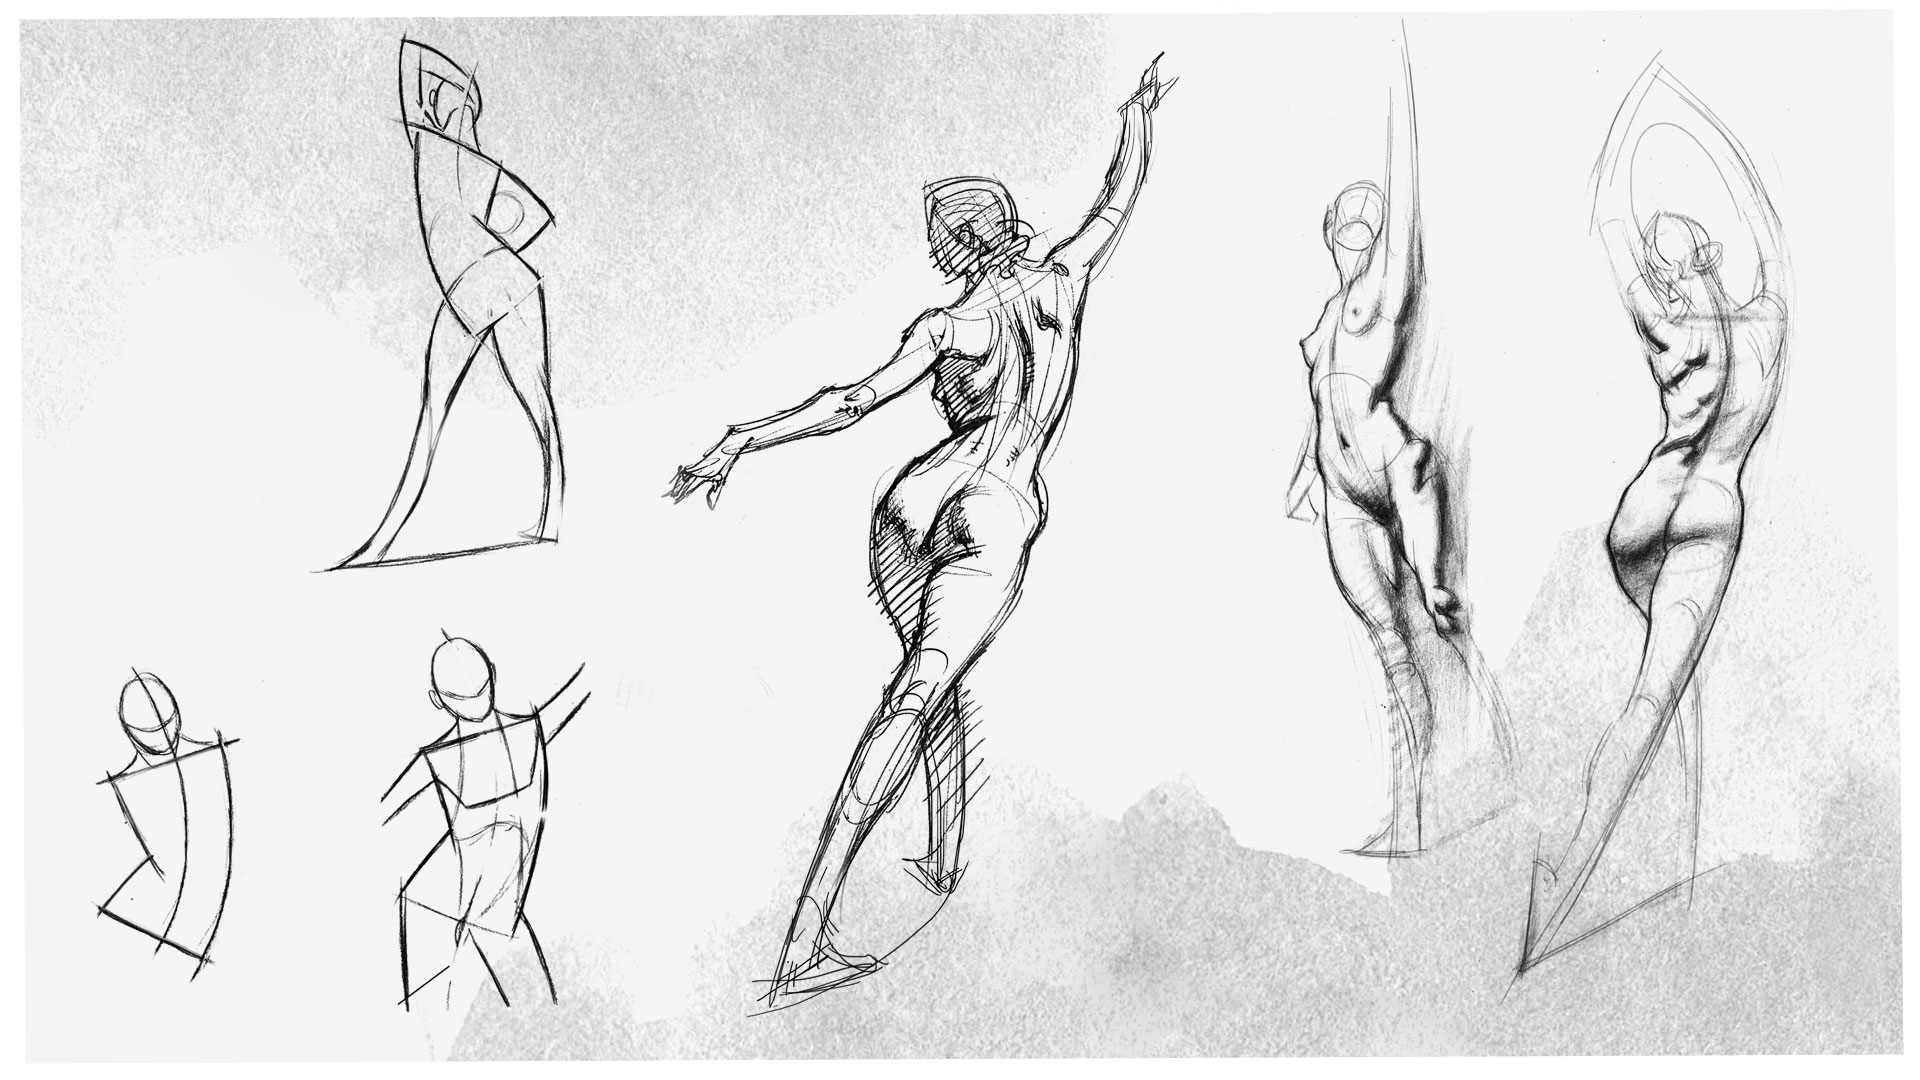 Drawings of a live person.